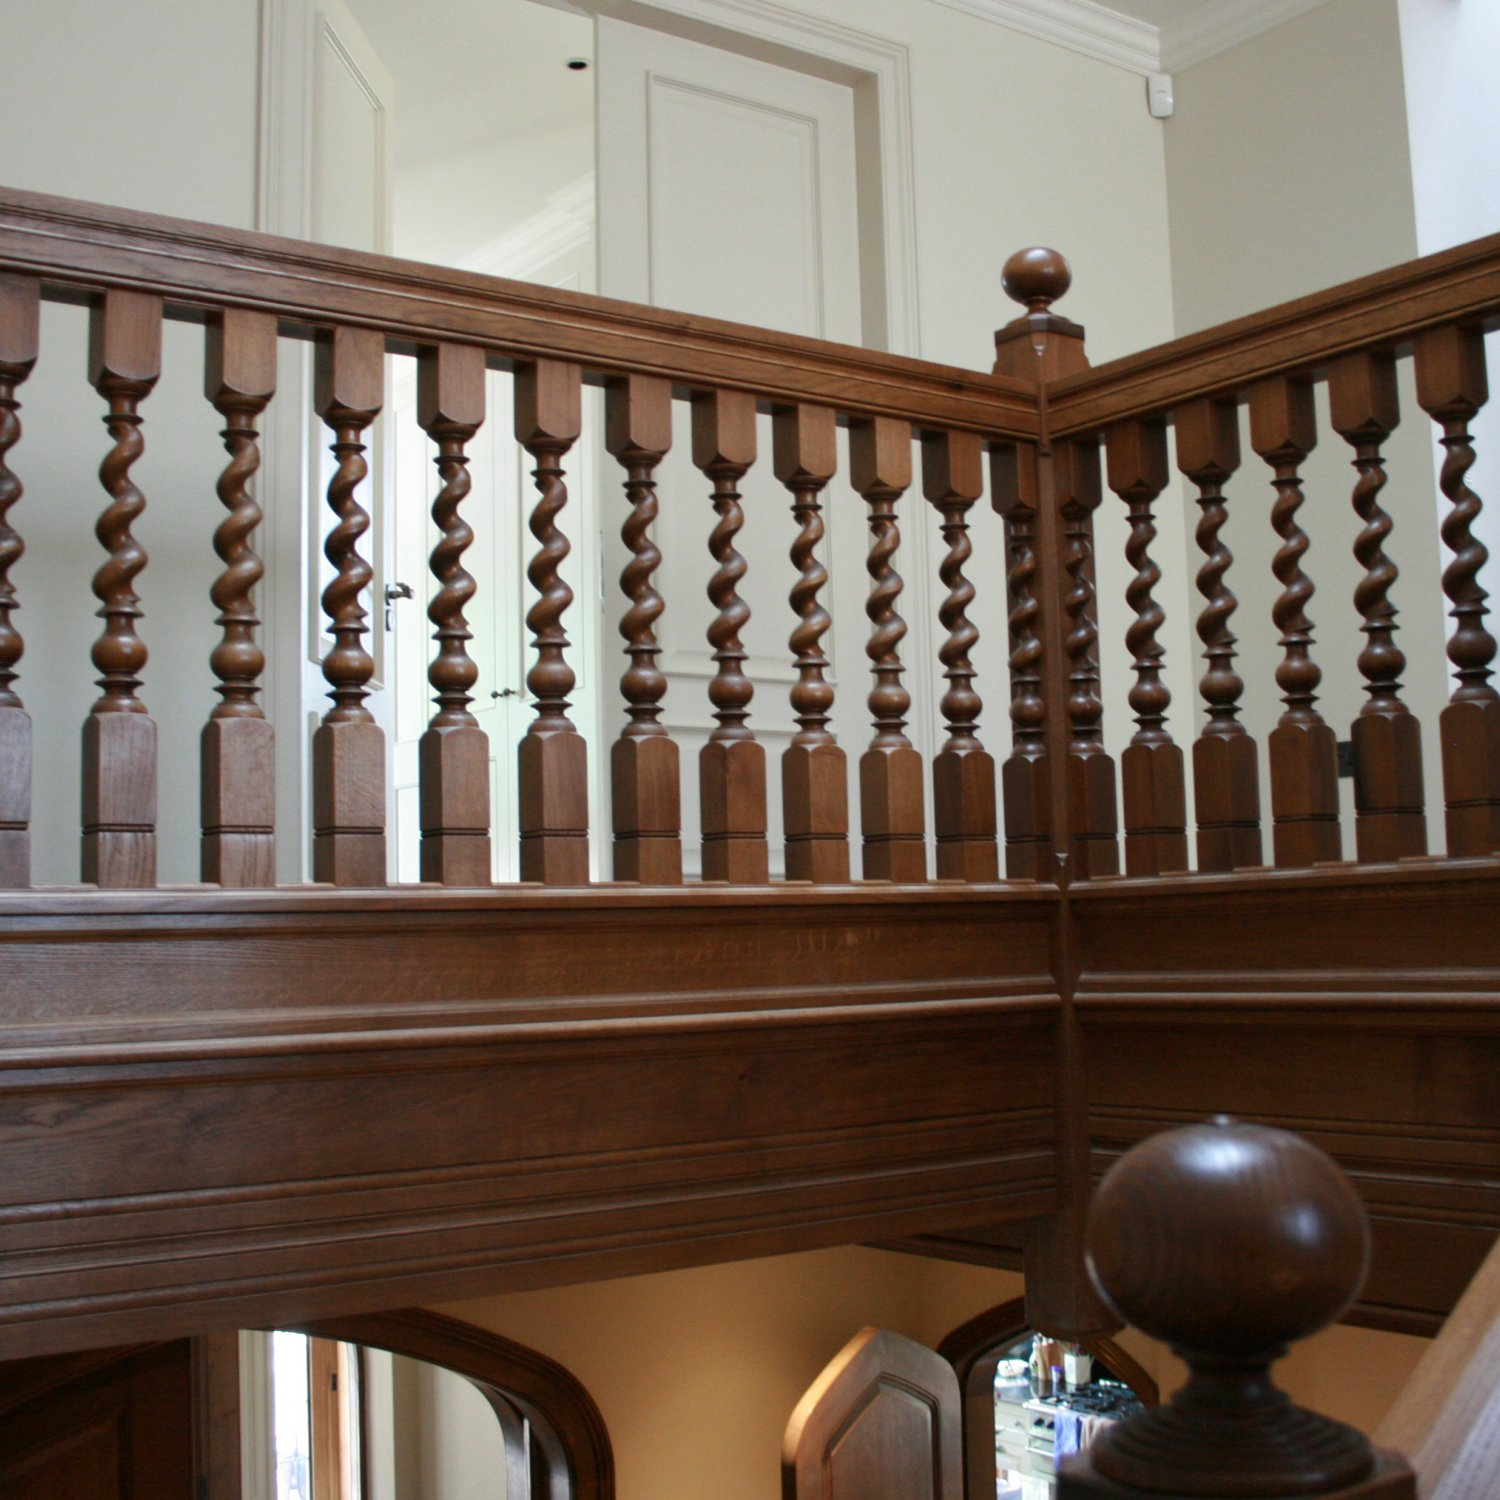 Solid oak staircase with barley-twist balusters